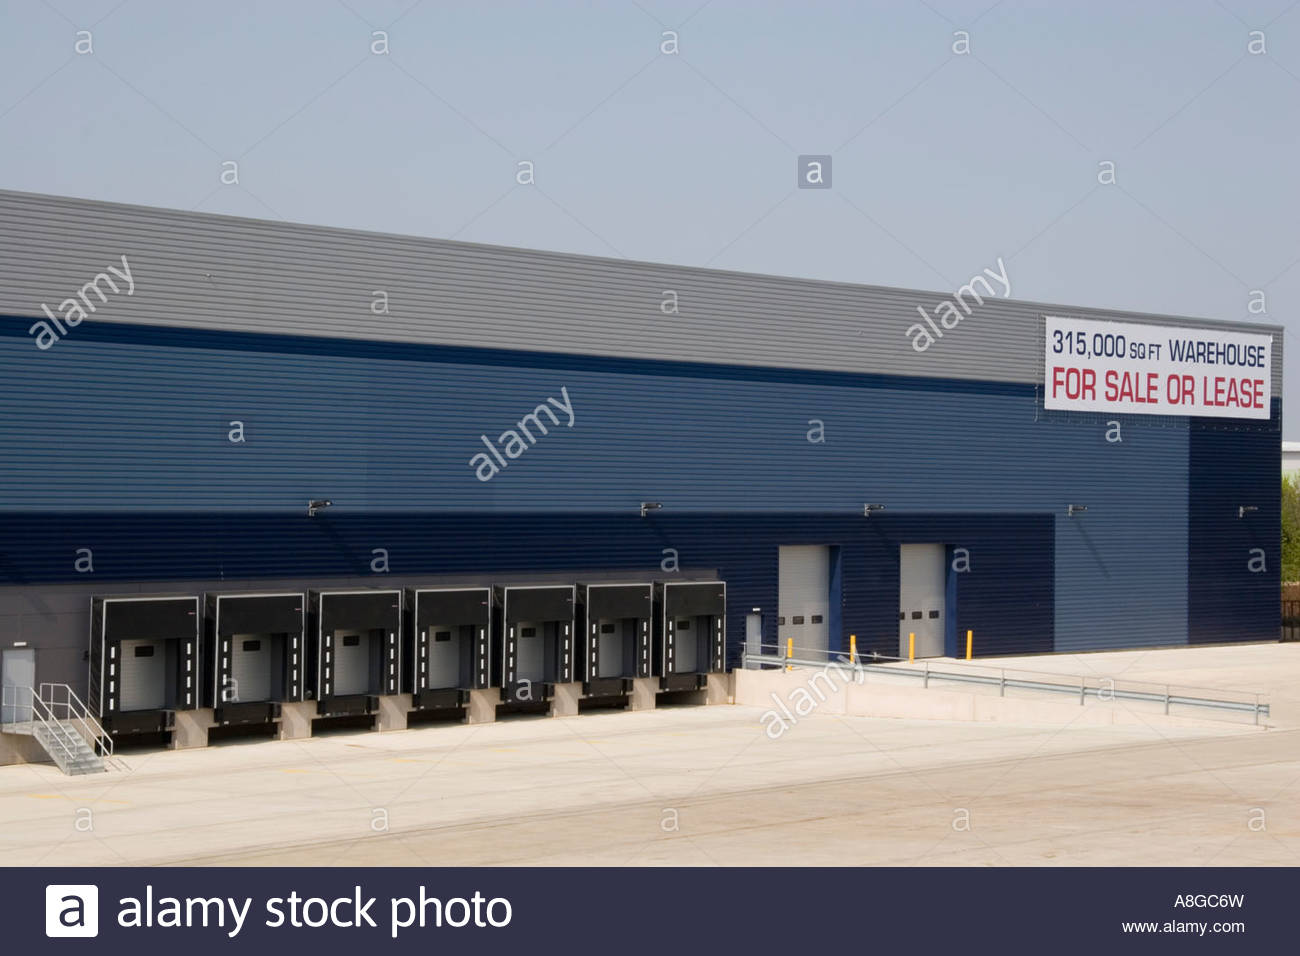 Vacant distribution warehouse For Sale or Lease, Milton Keynes, UK. - Stock Image